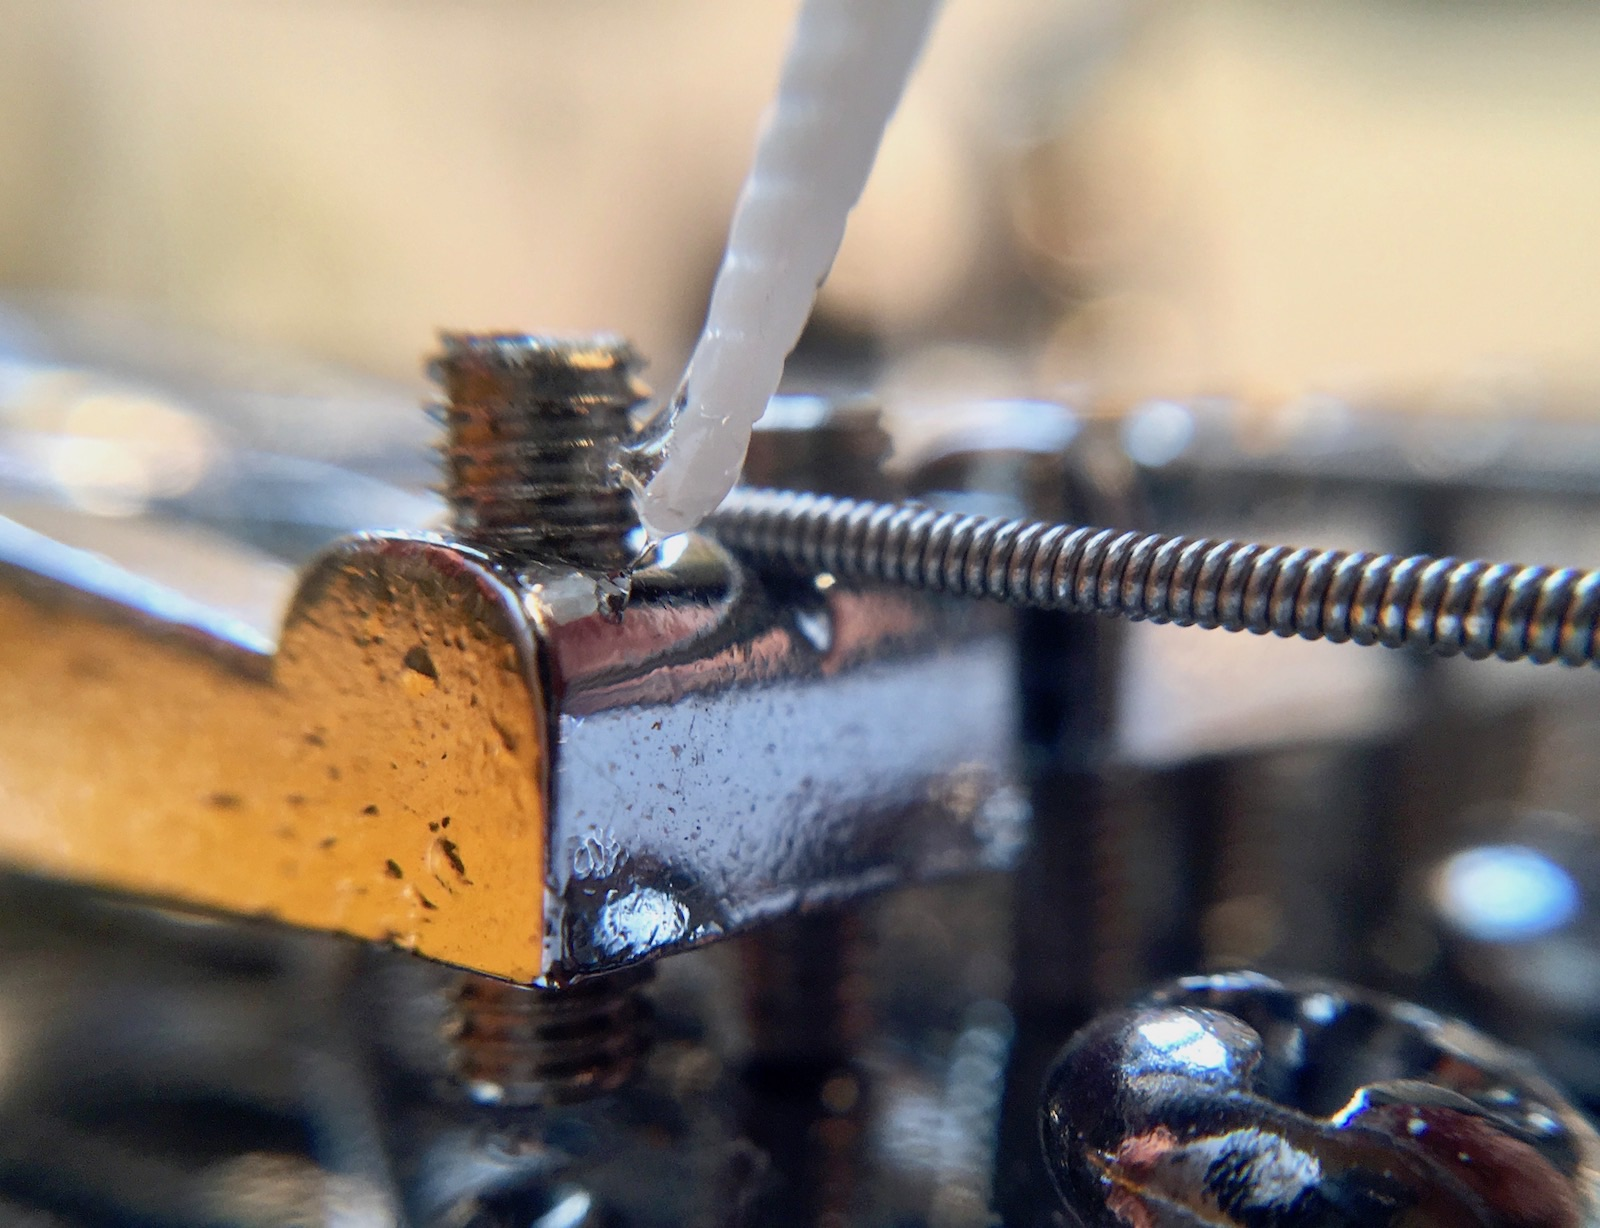 A tiny drop of lacquer, nail varnish, or thread-locking fluid will keep loose saddle screws in place